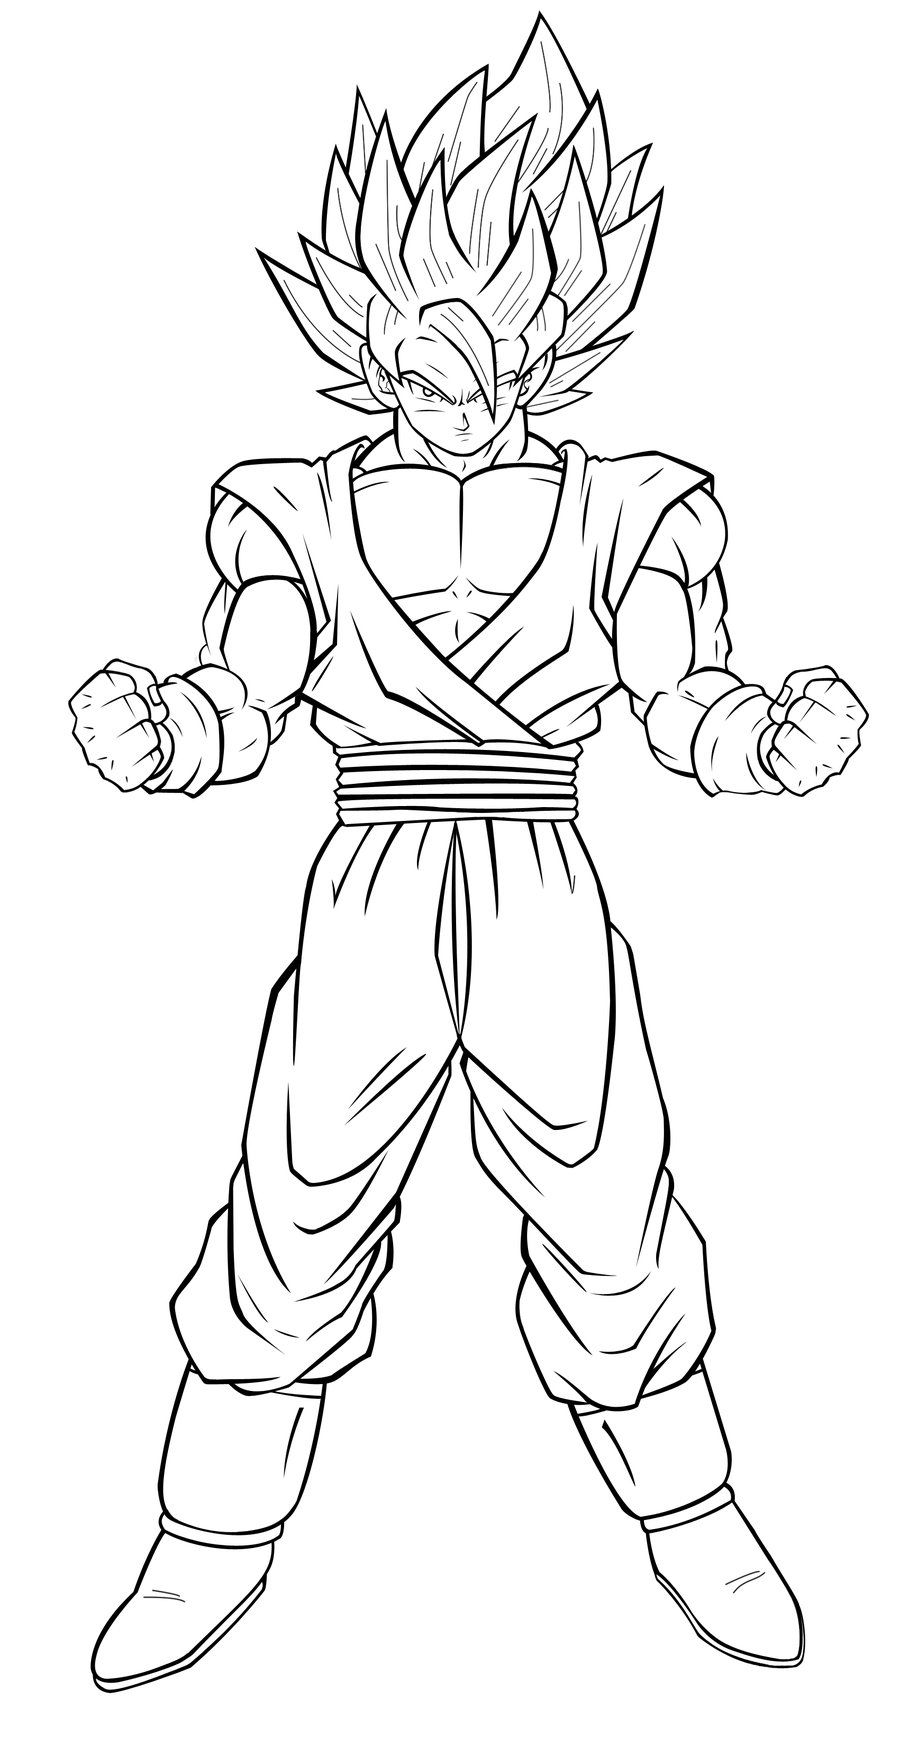 Goku Super Saiyan 4 Coloring Pages Images Isaiah Birthday Super